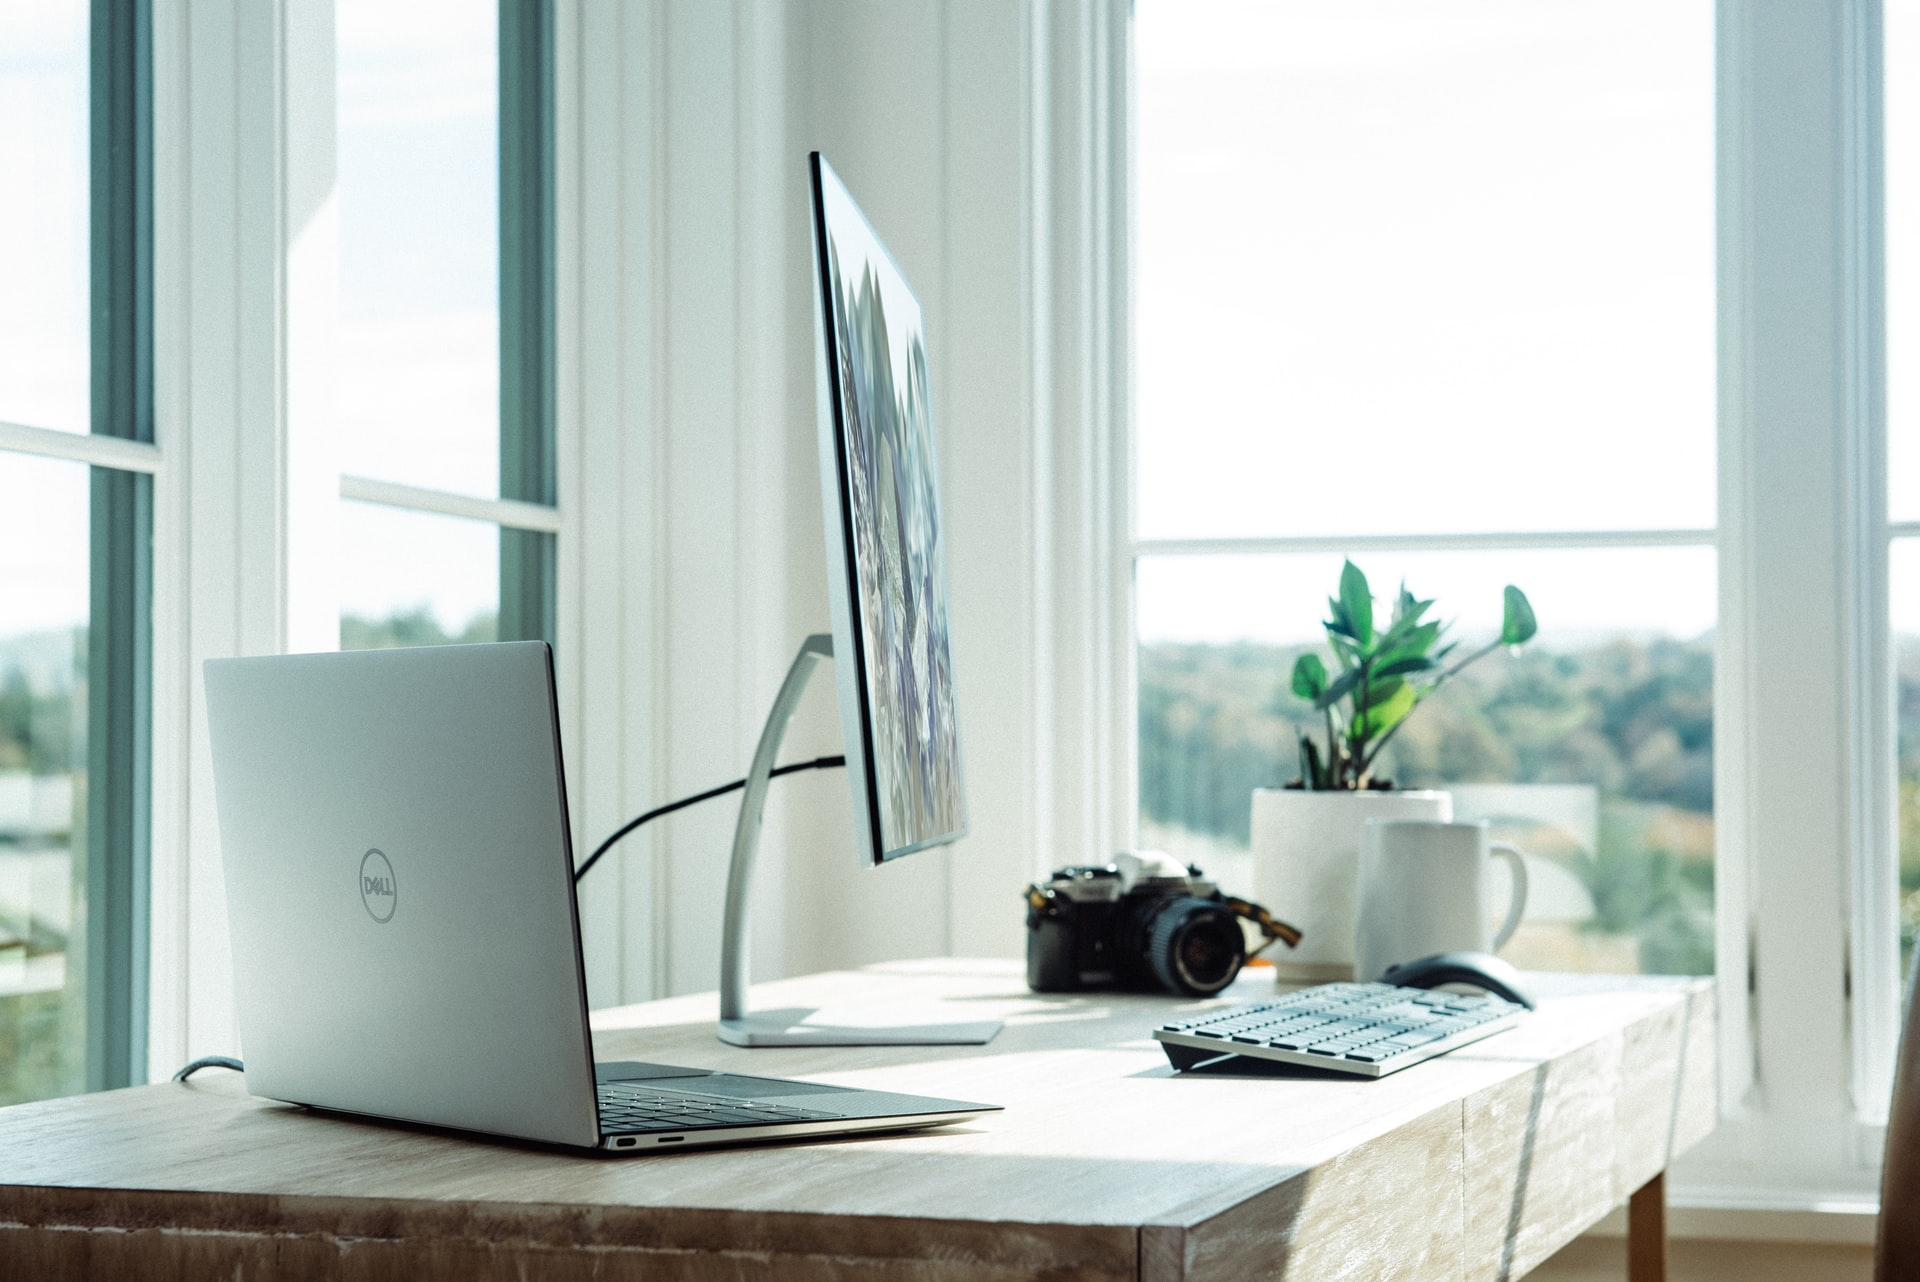 Remote working set up, including computer screen and laptop